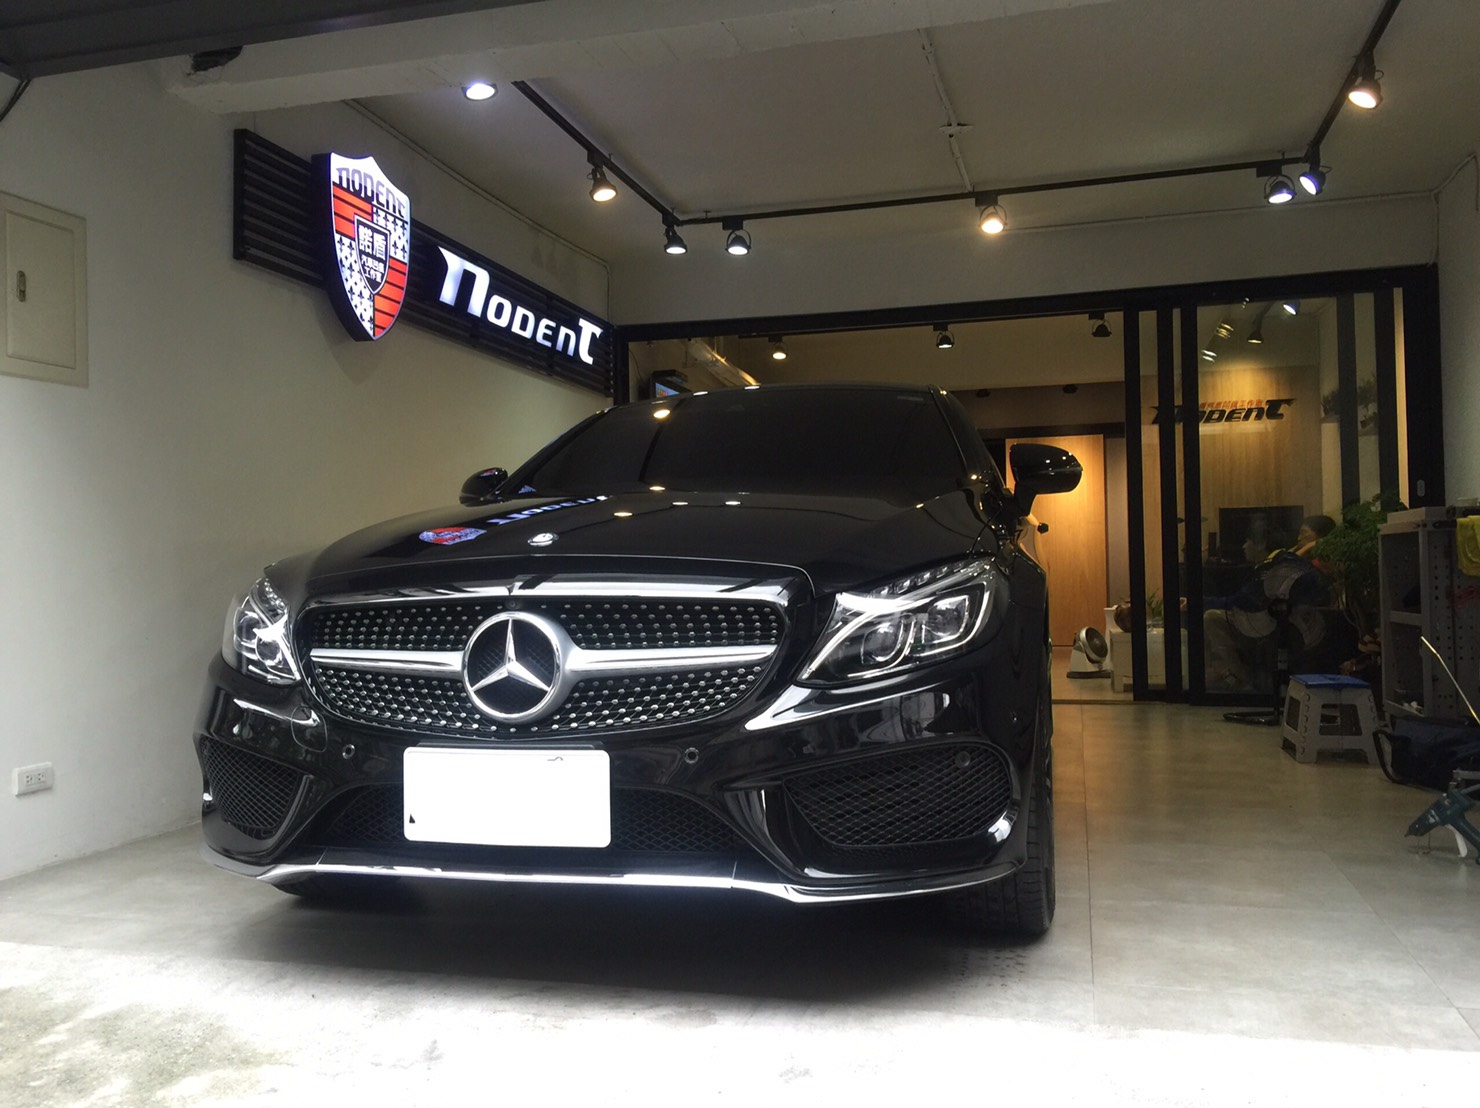 Benz C250 coupe 門鈑凹痕修復